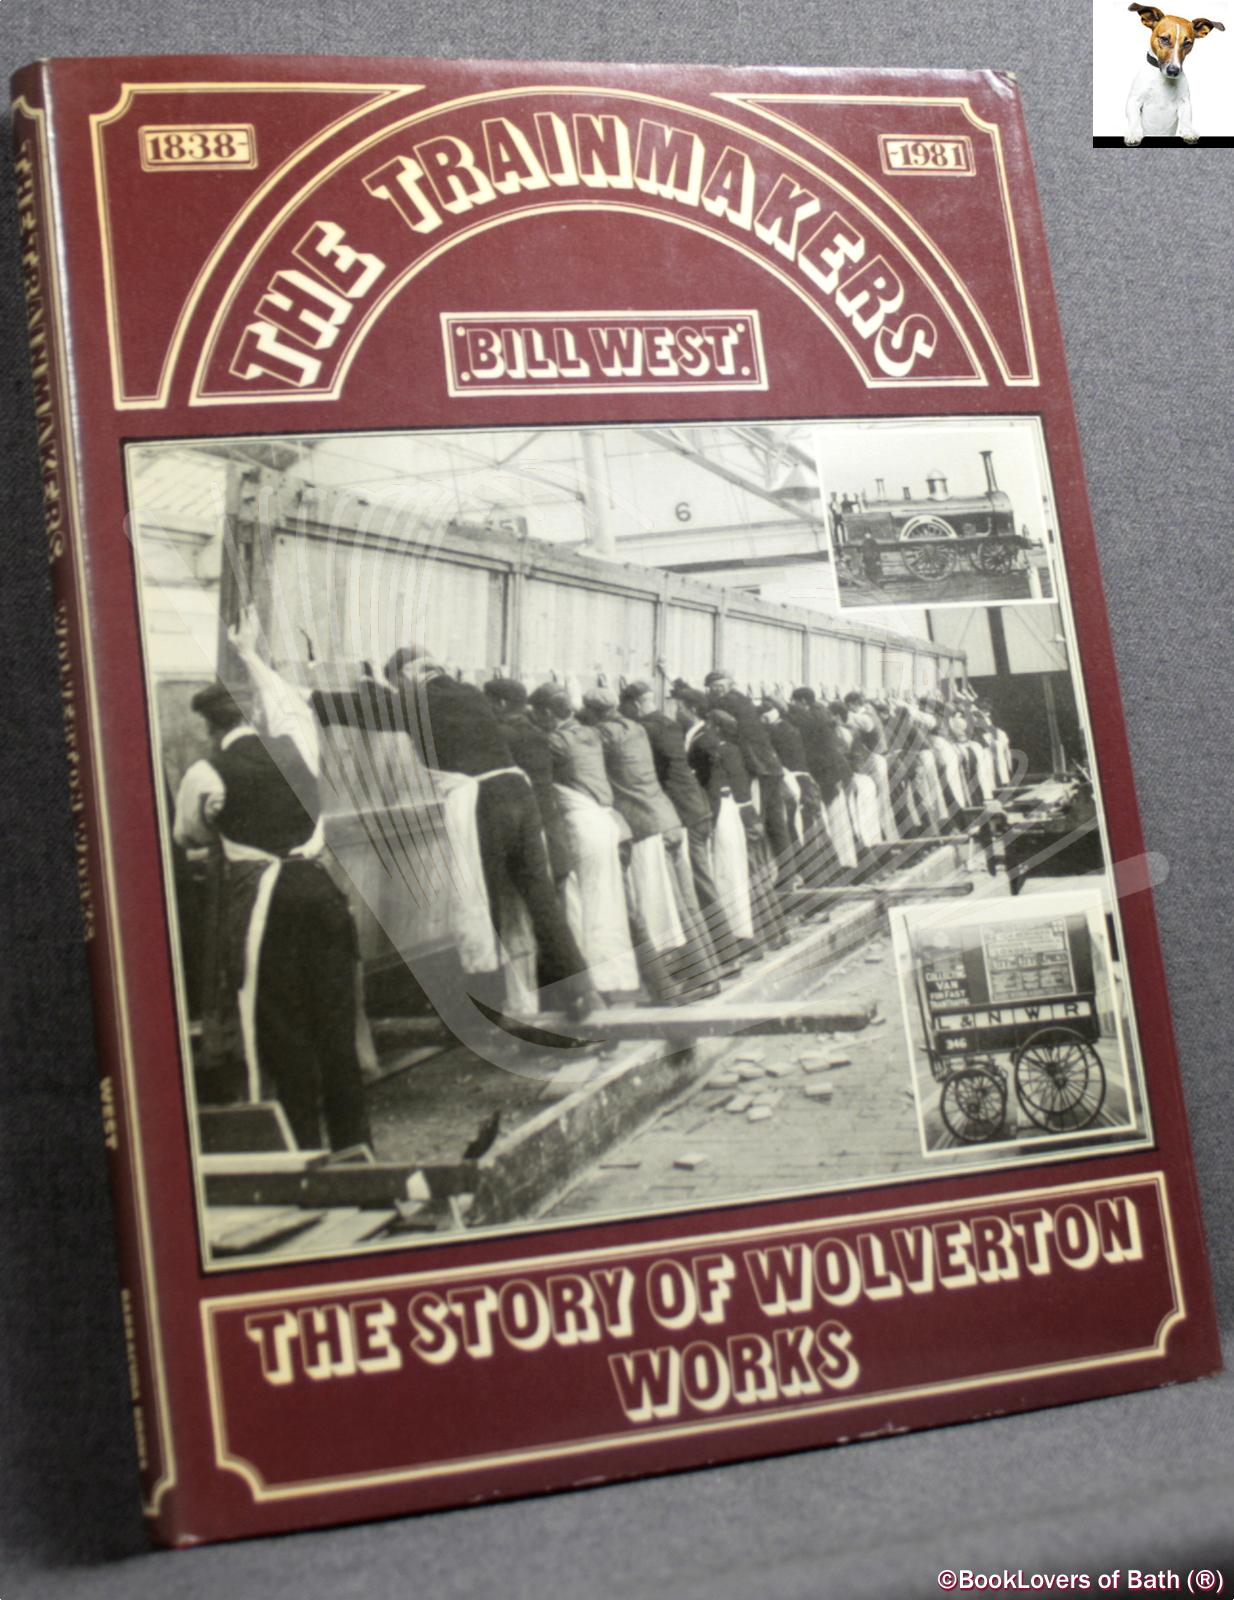 The Trainmakers: The Story of Wolverton Works 1838-1981 - Bill West